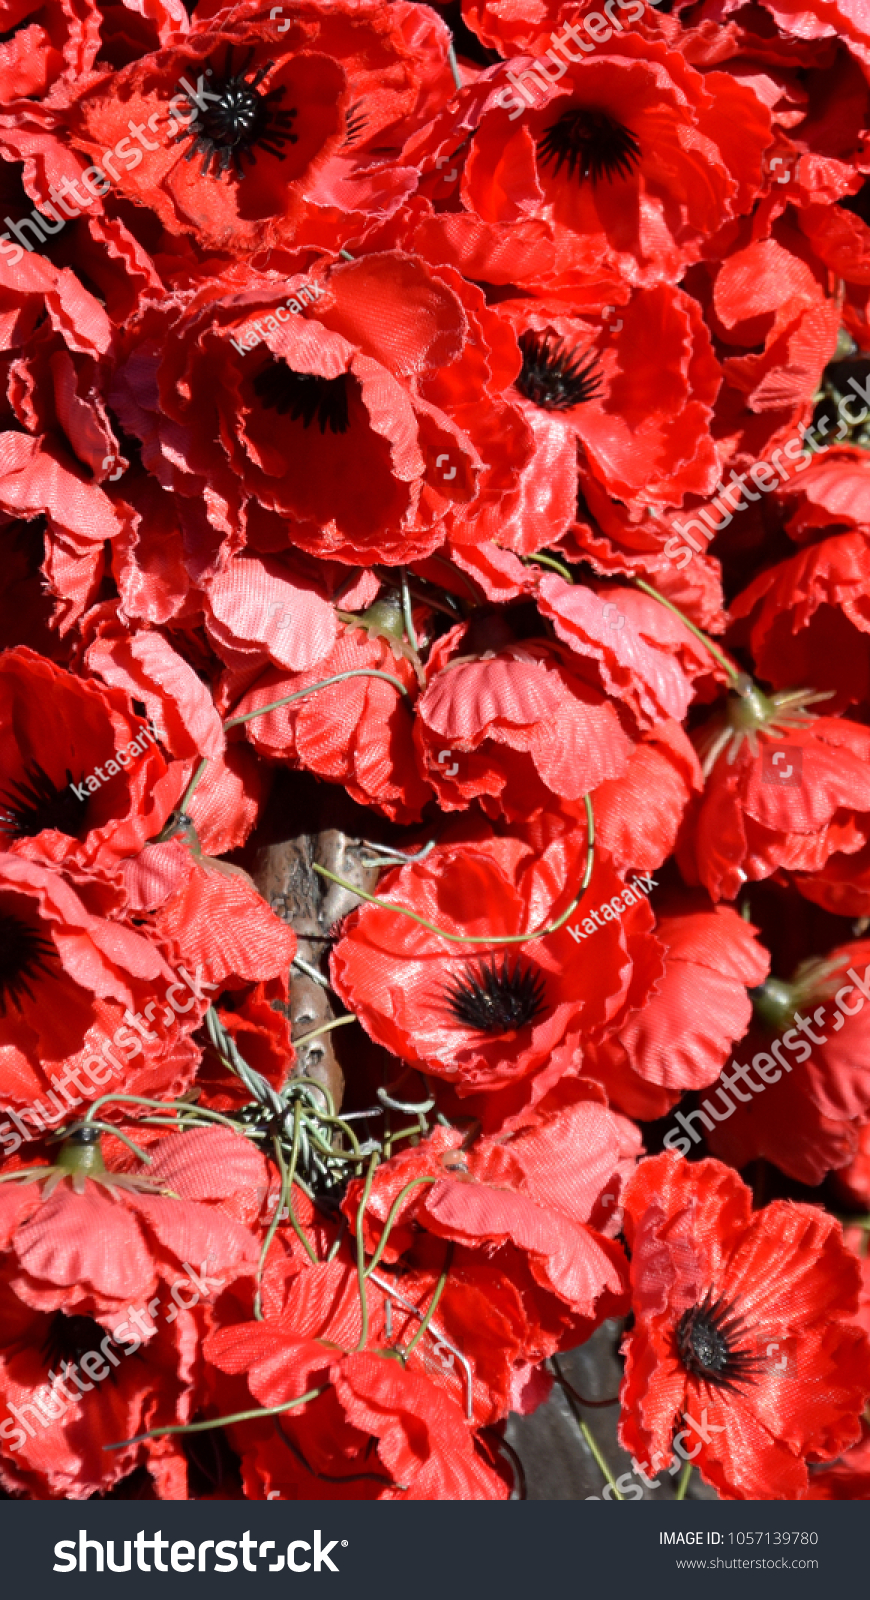 Plastic red poppies red poppy has stock photo 1057139780 plastic red poppies the red poppy has become a symbol of war remembrance anzac buycottarizona Images